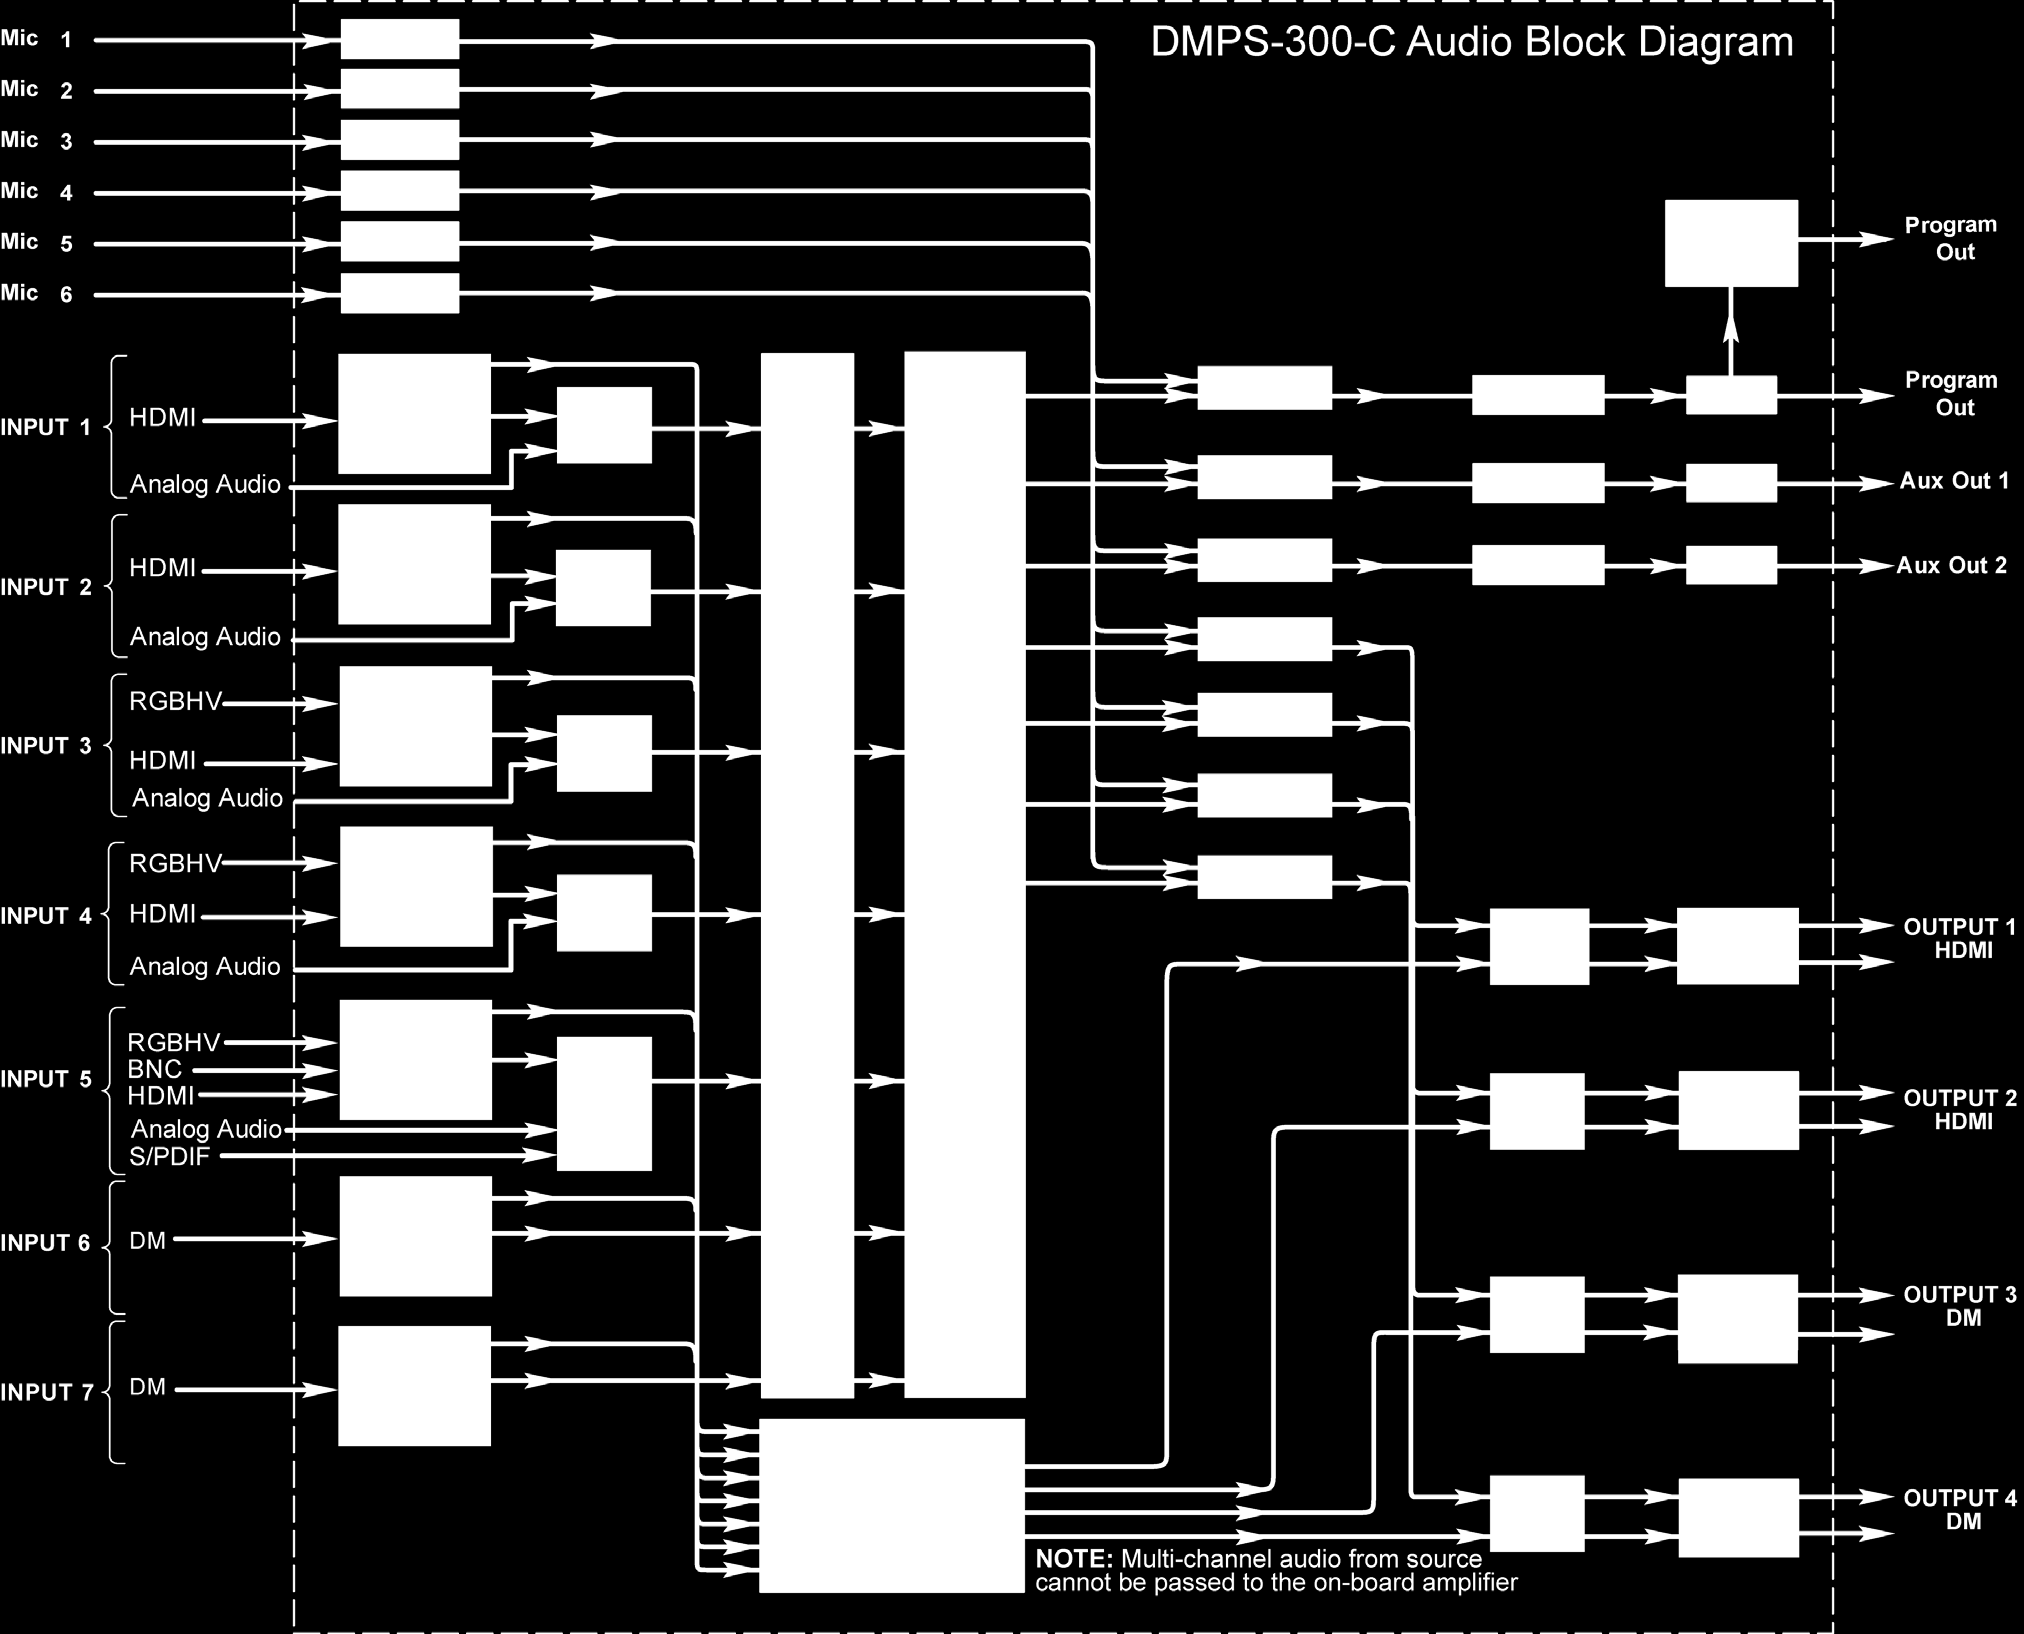 14 0 crestron dmps 100 c dmps 200 c dmps 300 c dmps 300 c aec crestron audio wiring diagram at gsmx.co